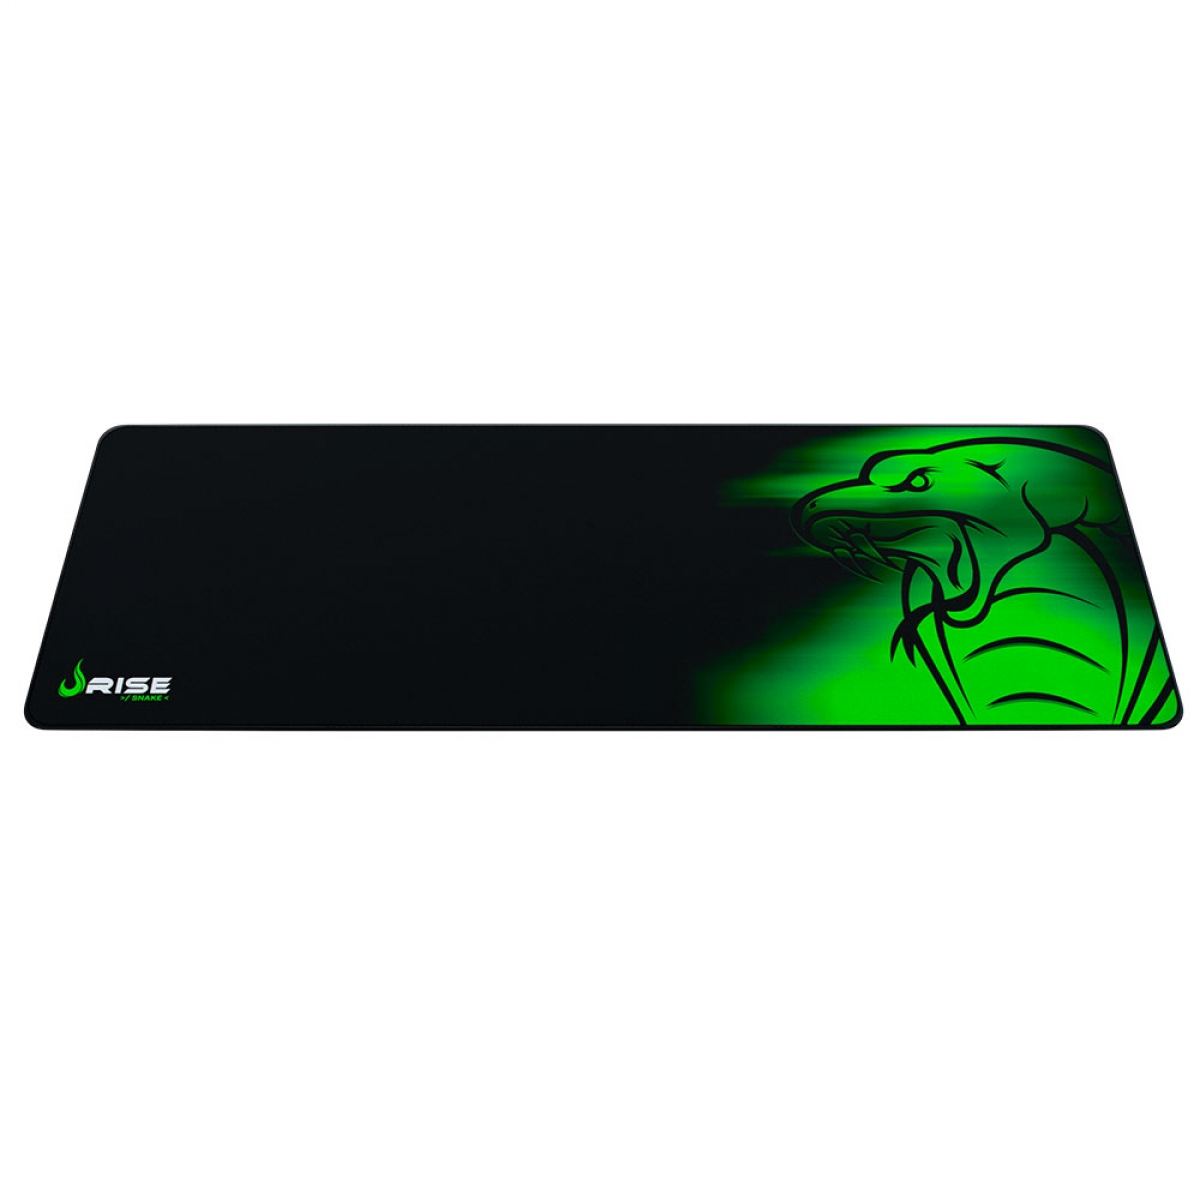 Mouse Pad Gamer Rise Mode SNAKE EXTENDED BORDA COSTURADA RG-MP-06-SE